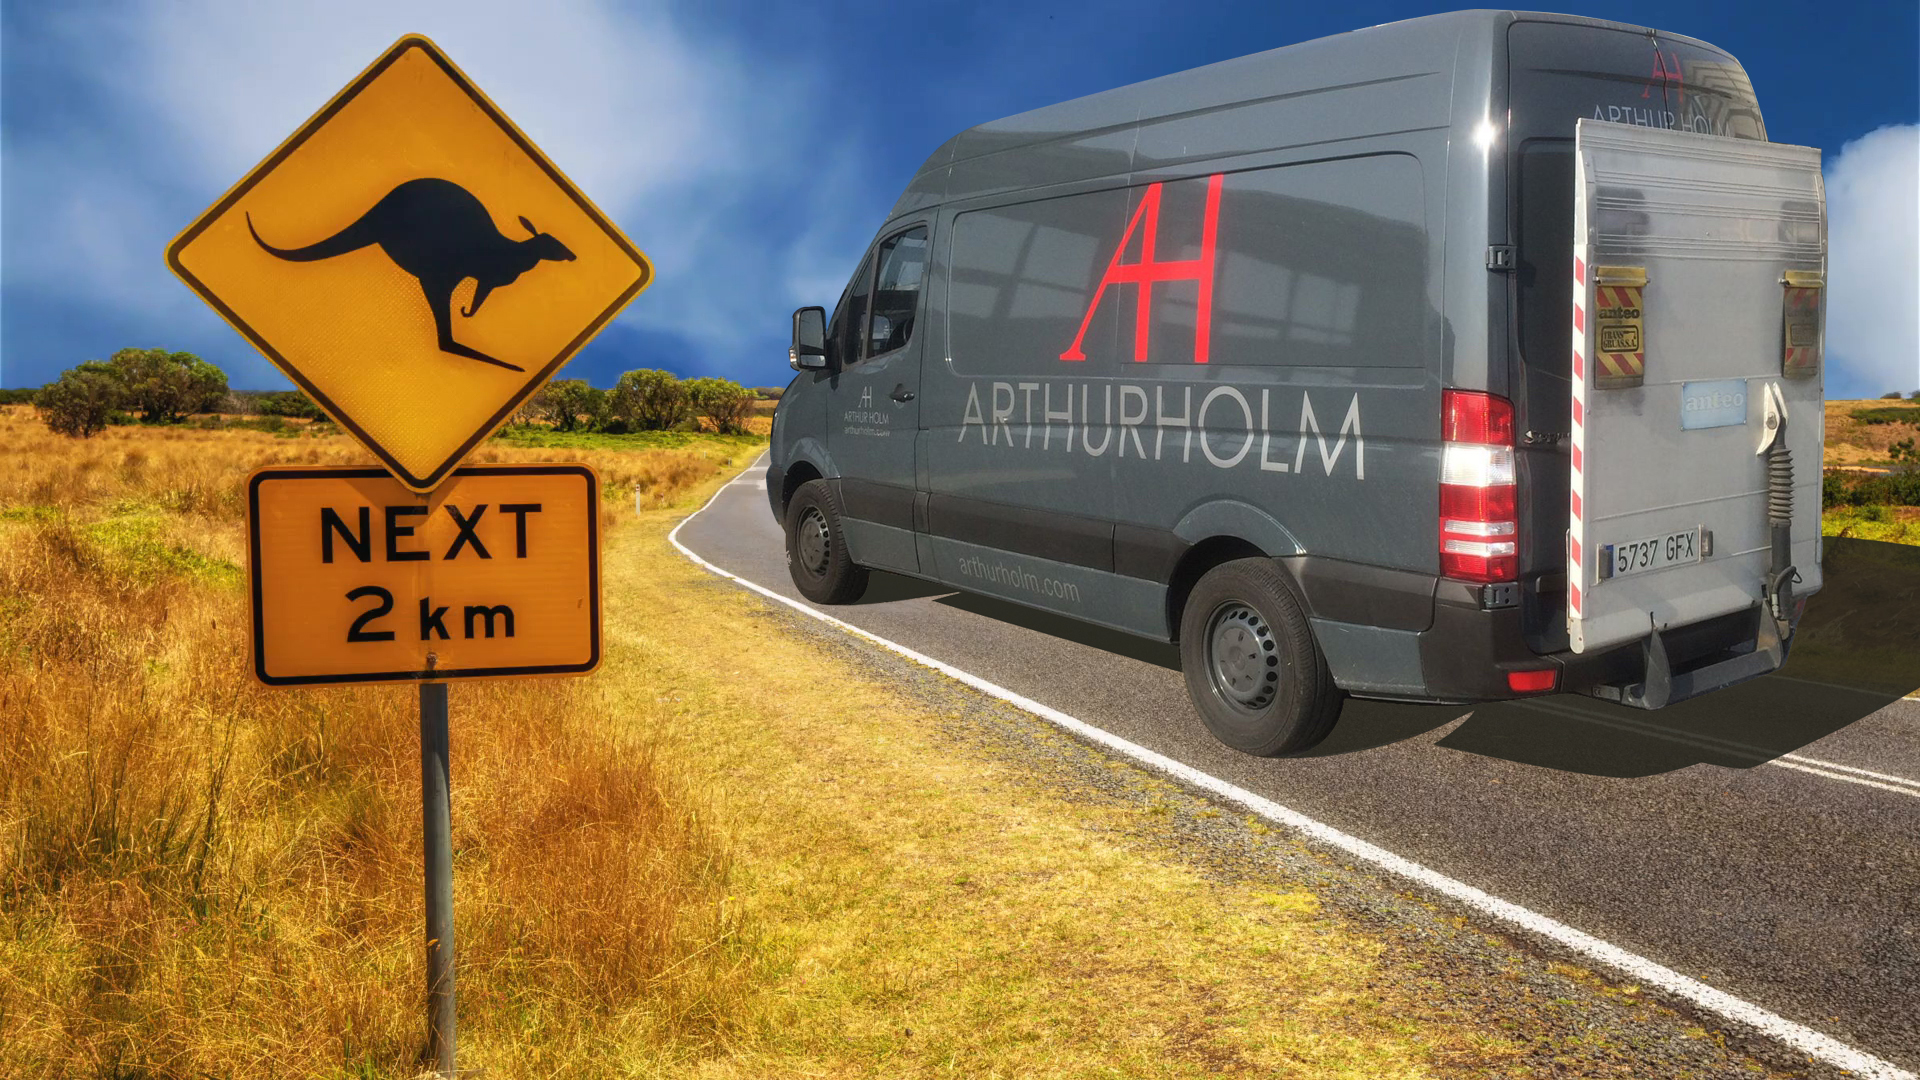 Arthur Holm in tour! Australia Roadshow 2018